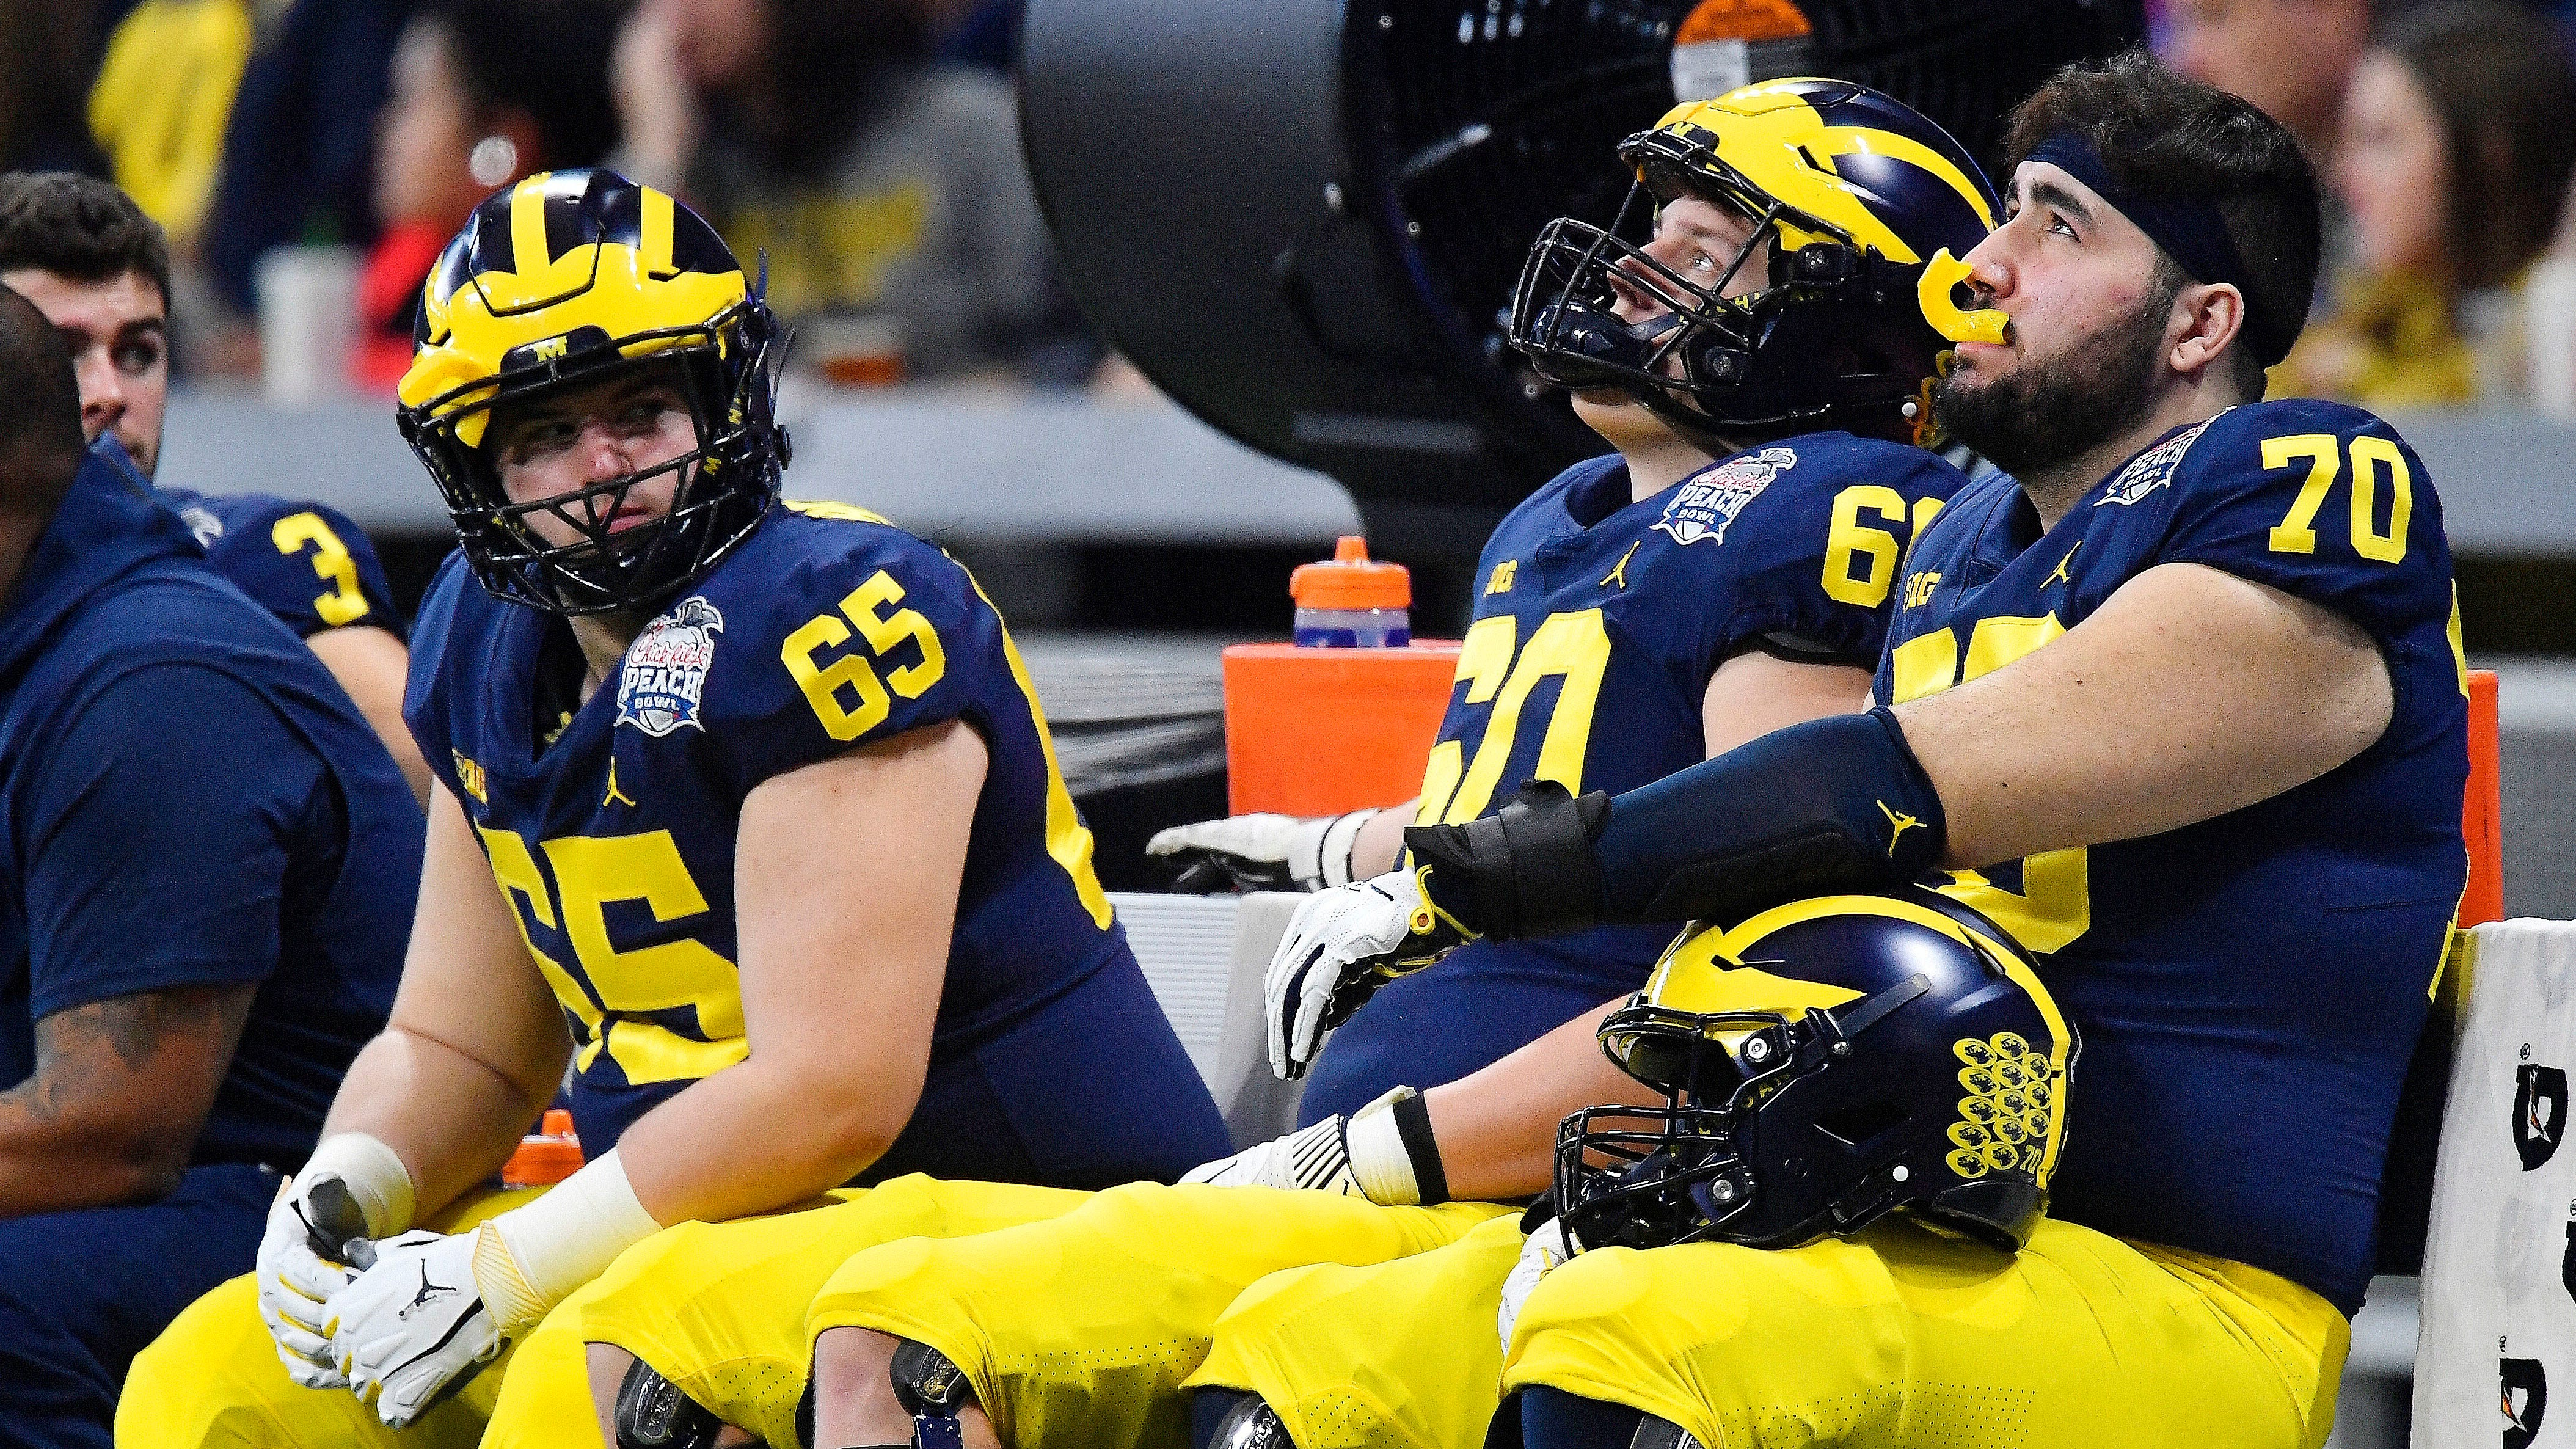 Michigan S Football Season Was Nothing But A Mirage